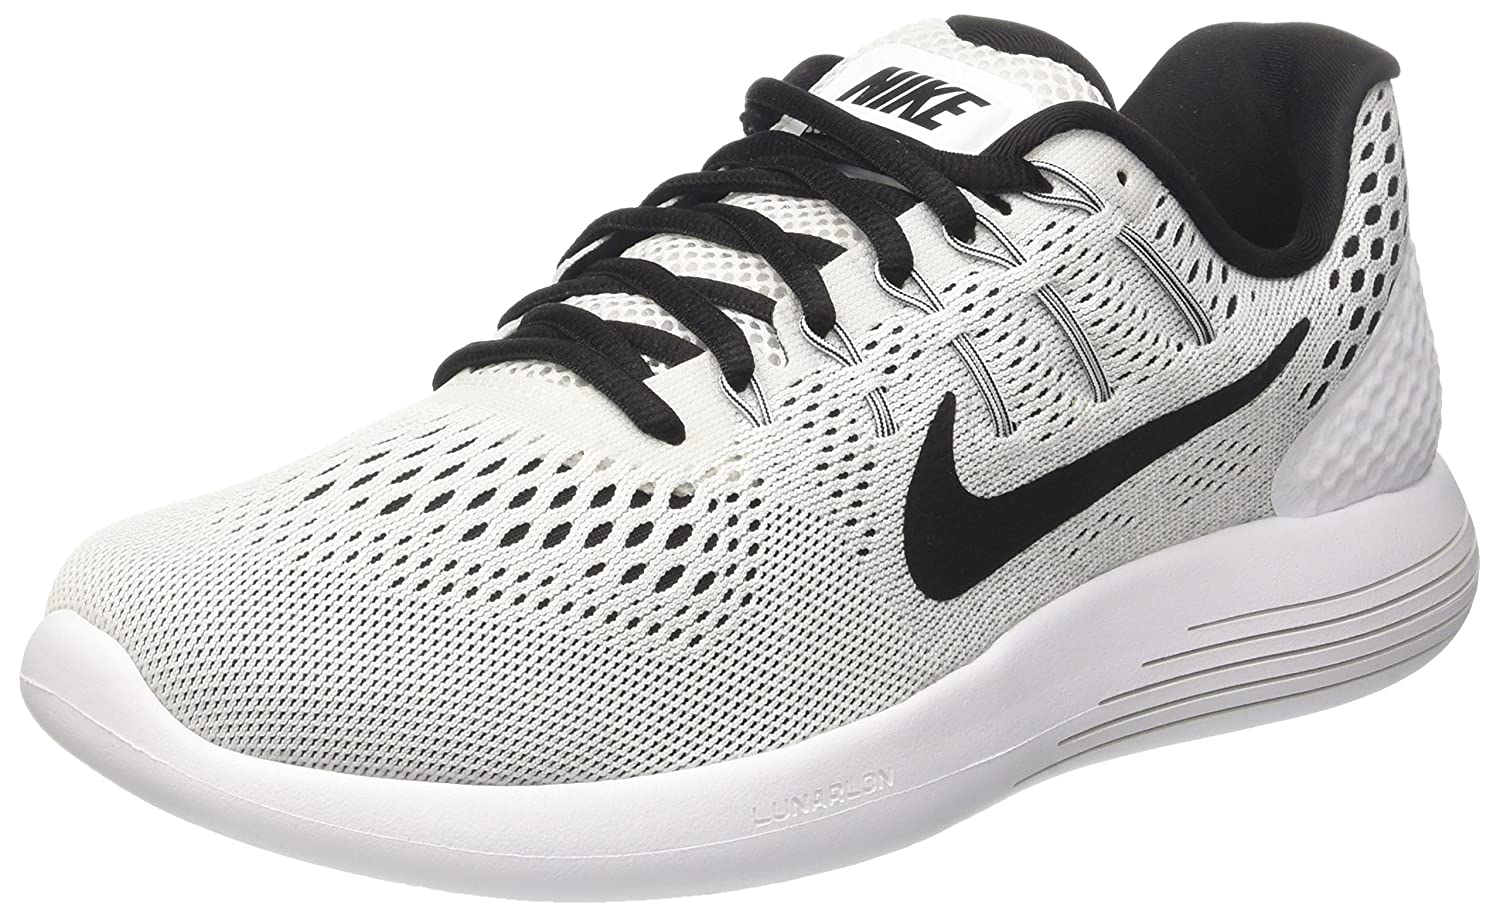 Nike Mens Lunarglide 8, Black / White - Anthracite B07CRJS5MZ 11 D(M) US|White/Black